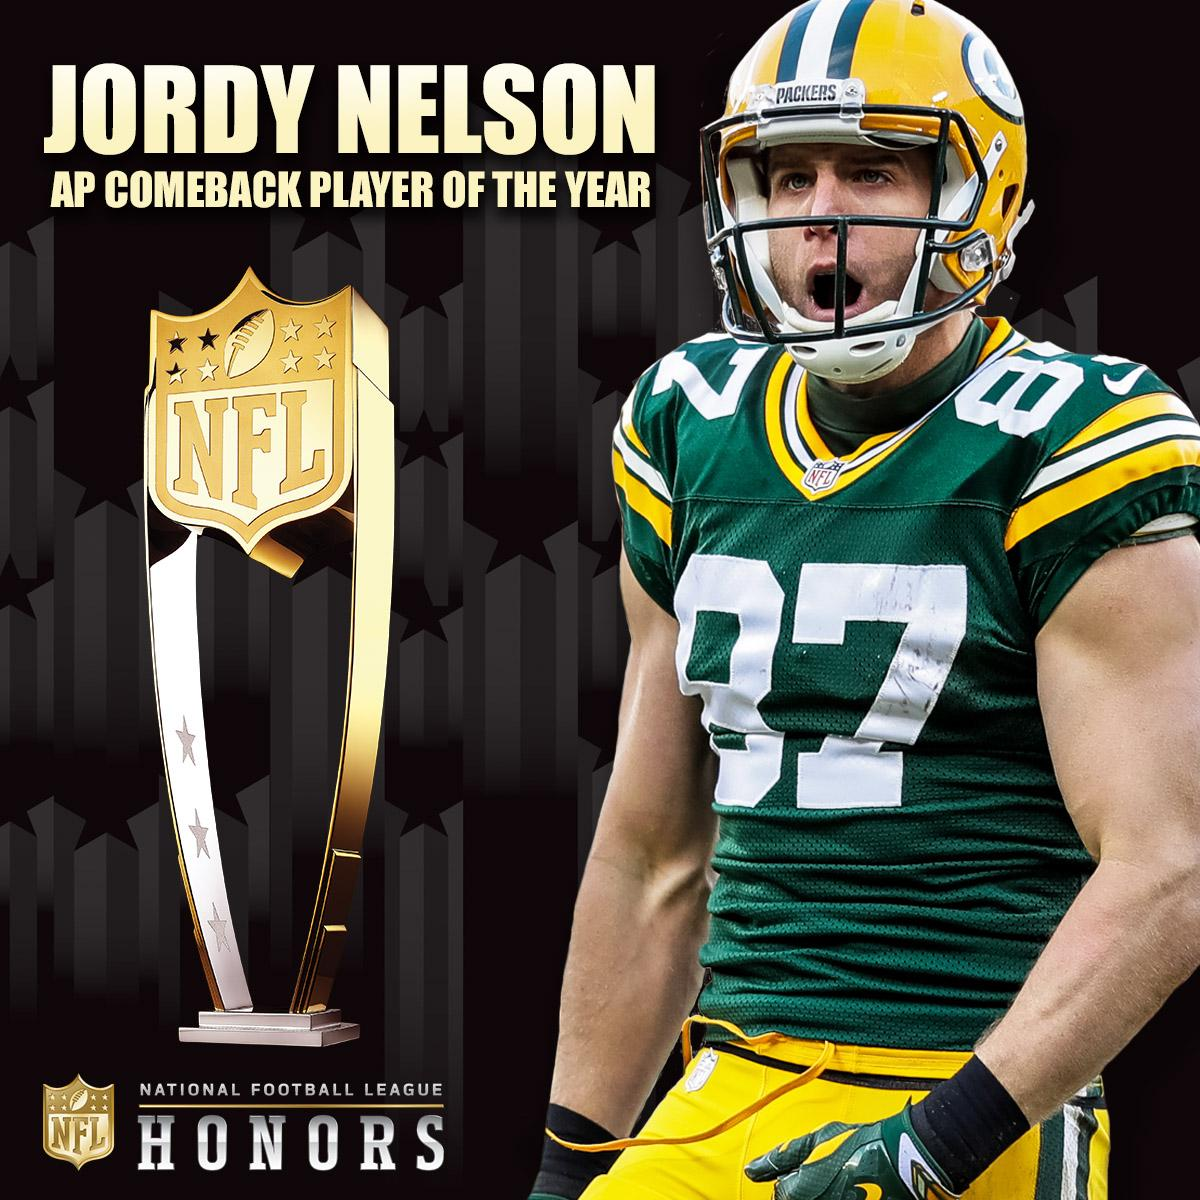 Congrats, @JordyRNelson!   AP Comeback Player of the Year ��: https://t.co/K7riEXFn8U  #NFLHonors #GoPackGo https://t.co/CN1Zmk0o6k